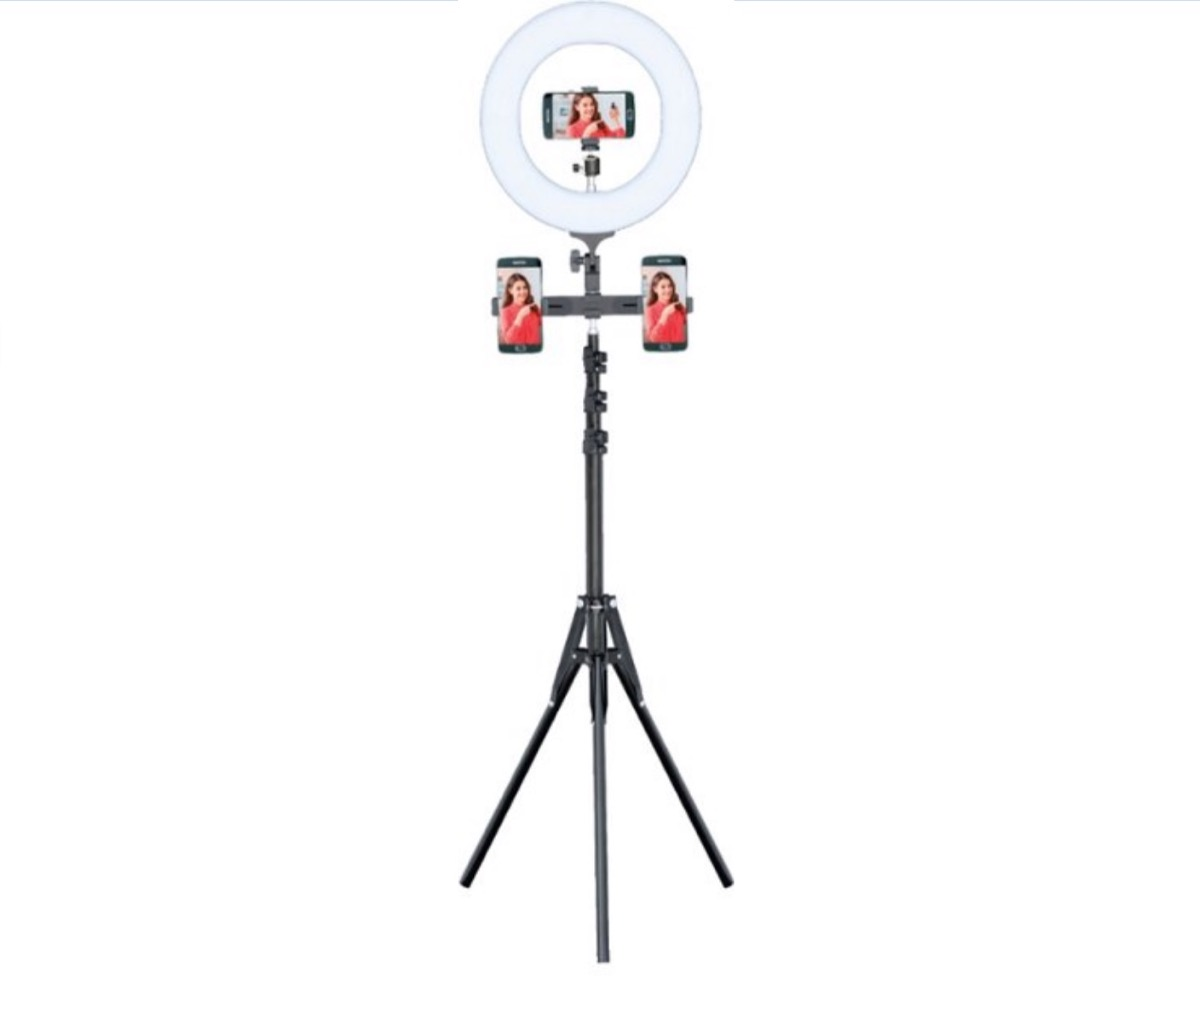 black ring light tripod with two phones attached to it